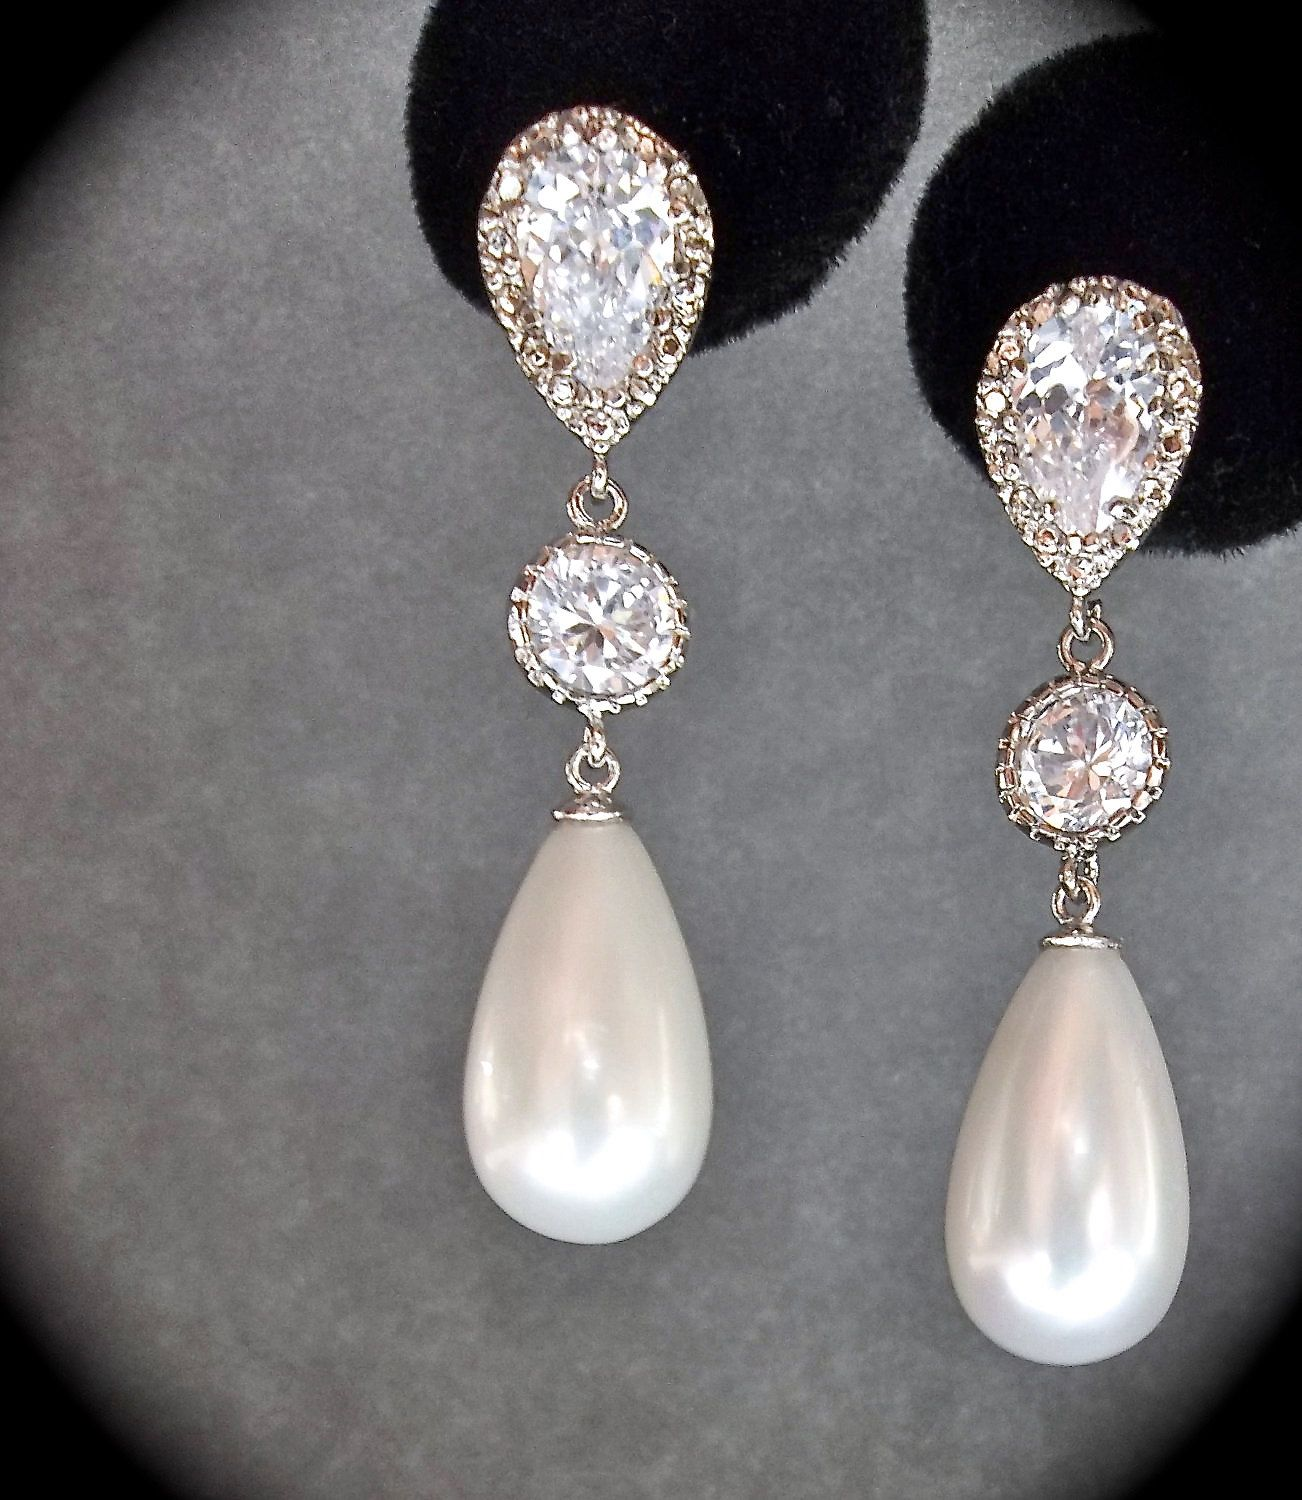 0b23d4a554089b Bridal Jewelry - Sterling Silver - Long - pearl drop earrings - Pearl  earrings - Brides earrings -. $42.99, via Etsy.